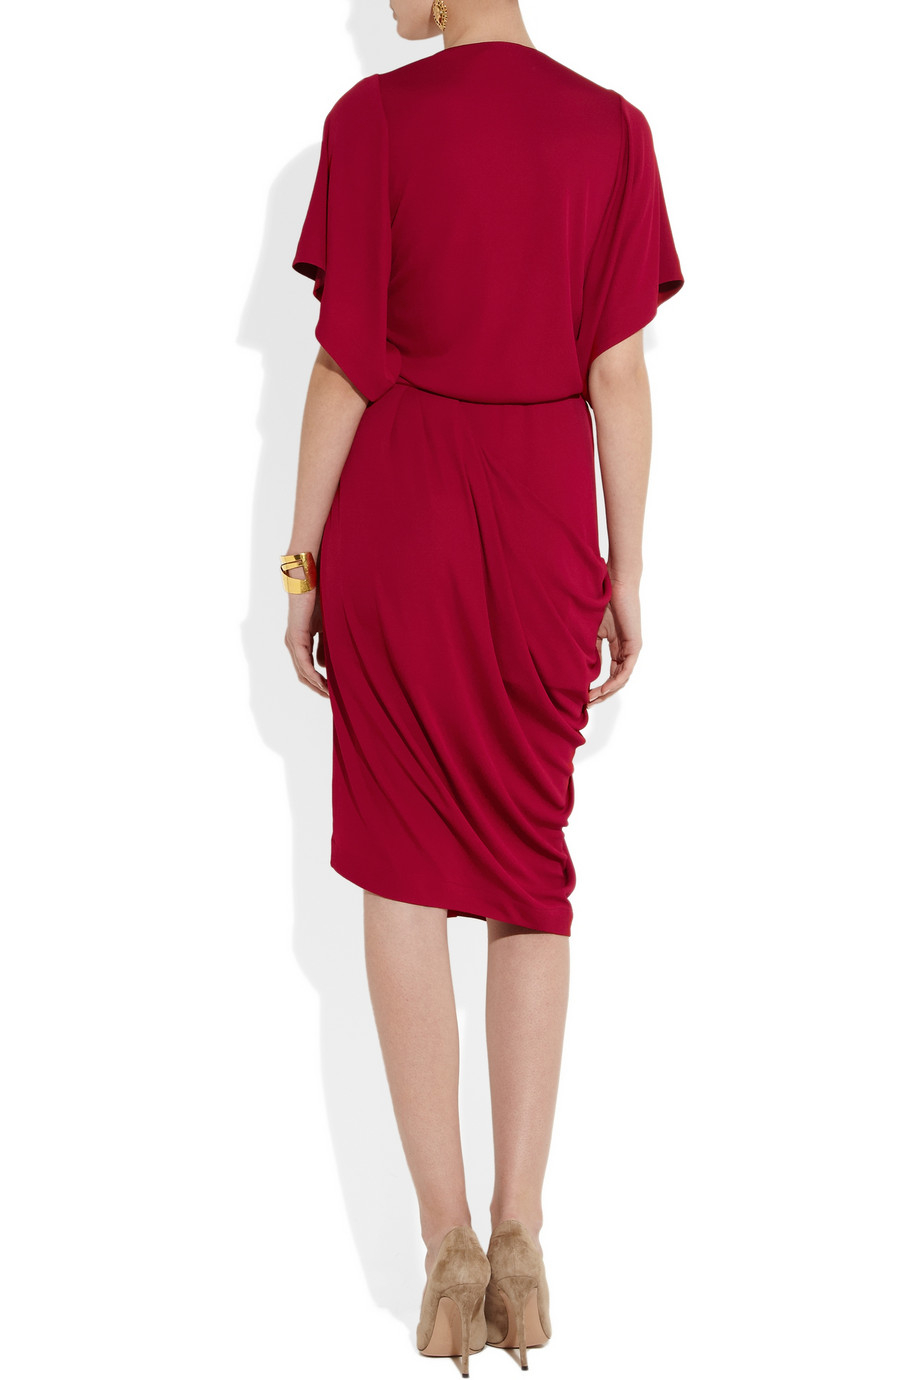 Vionnet Crepe Wrap Effect Dress In Red Lyst